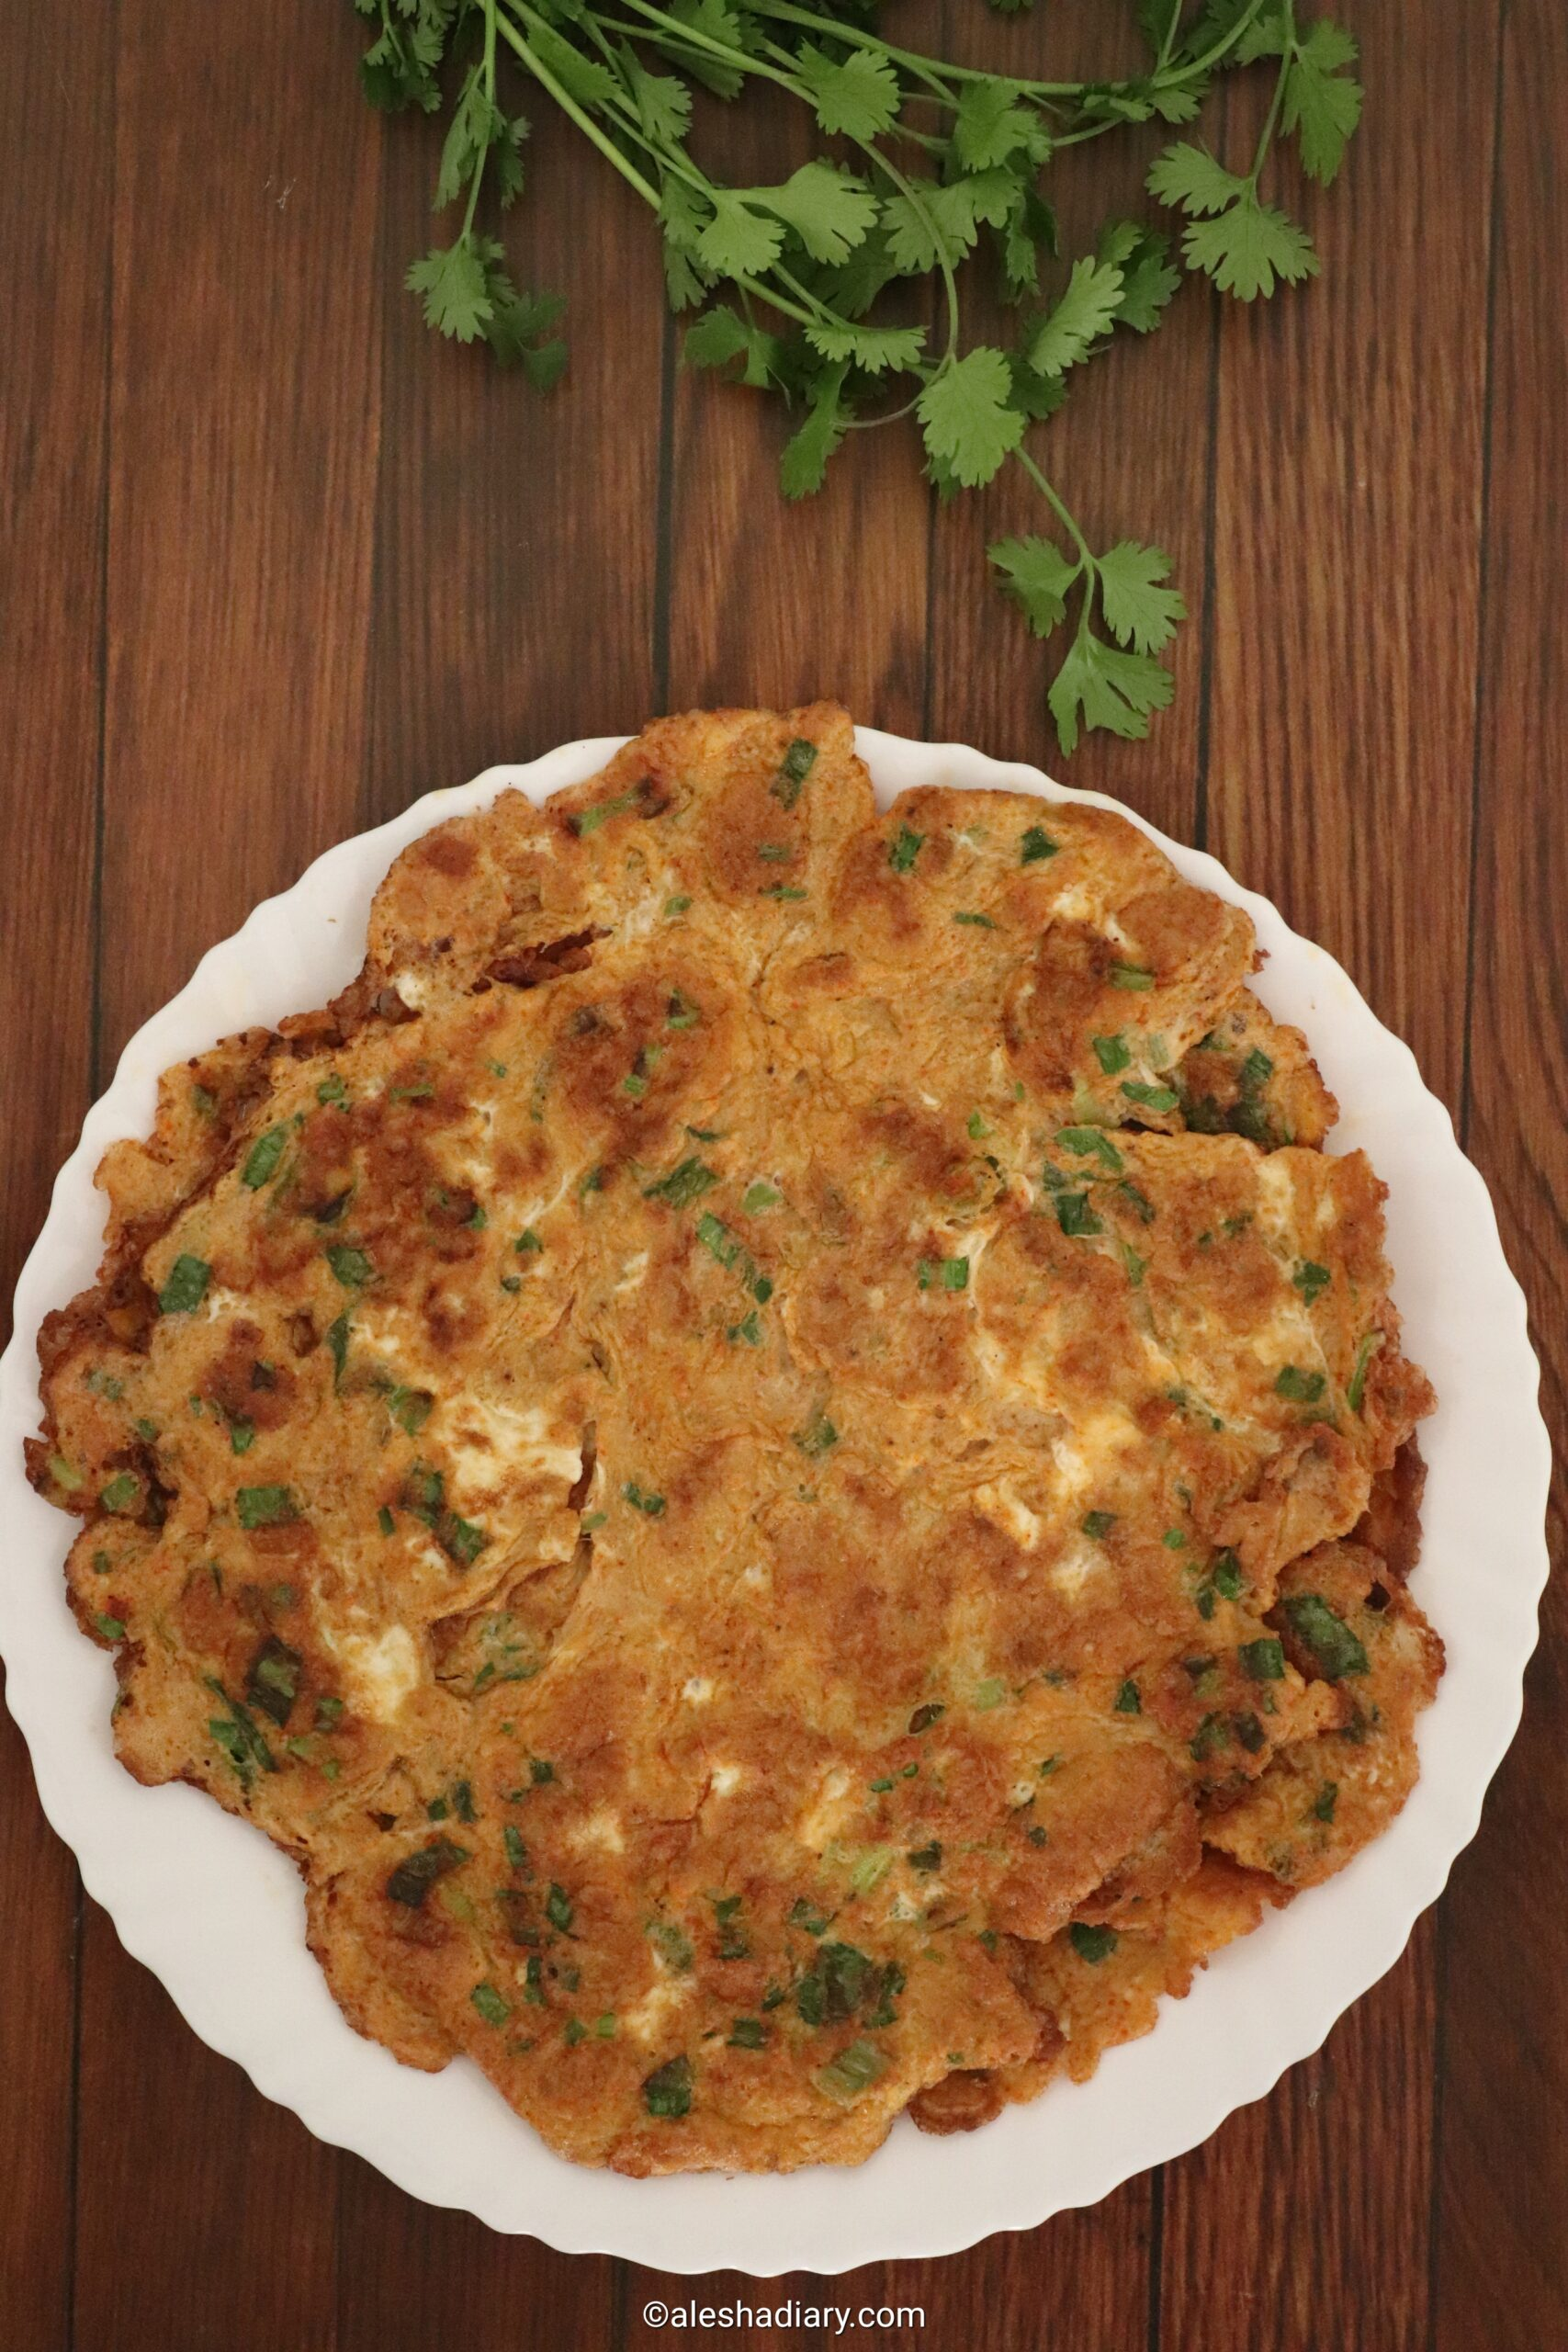 Spring onion omelette – Spring onion egg fry